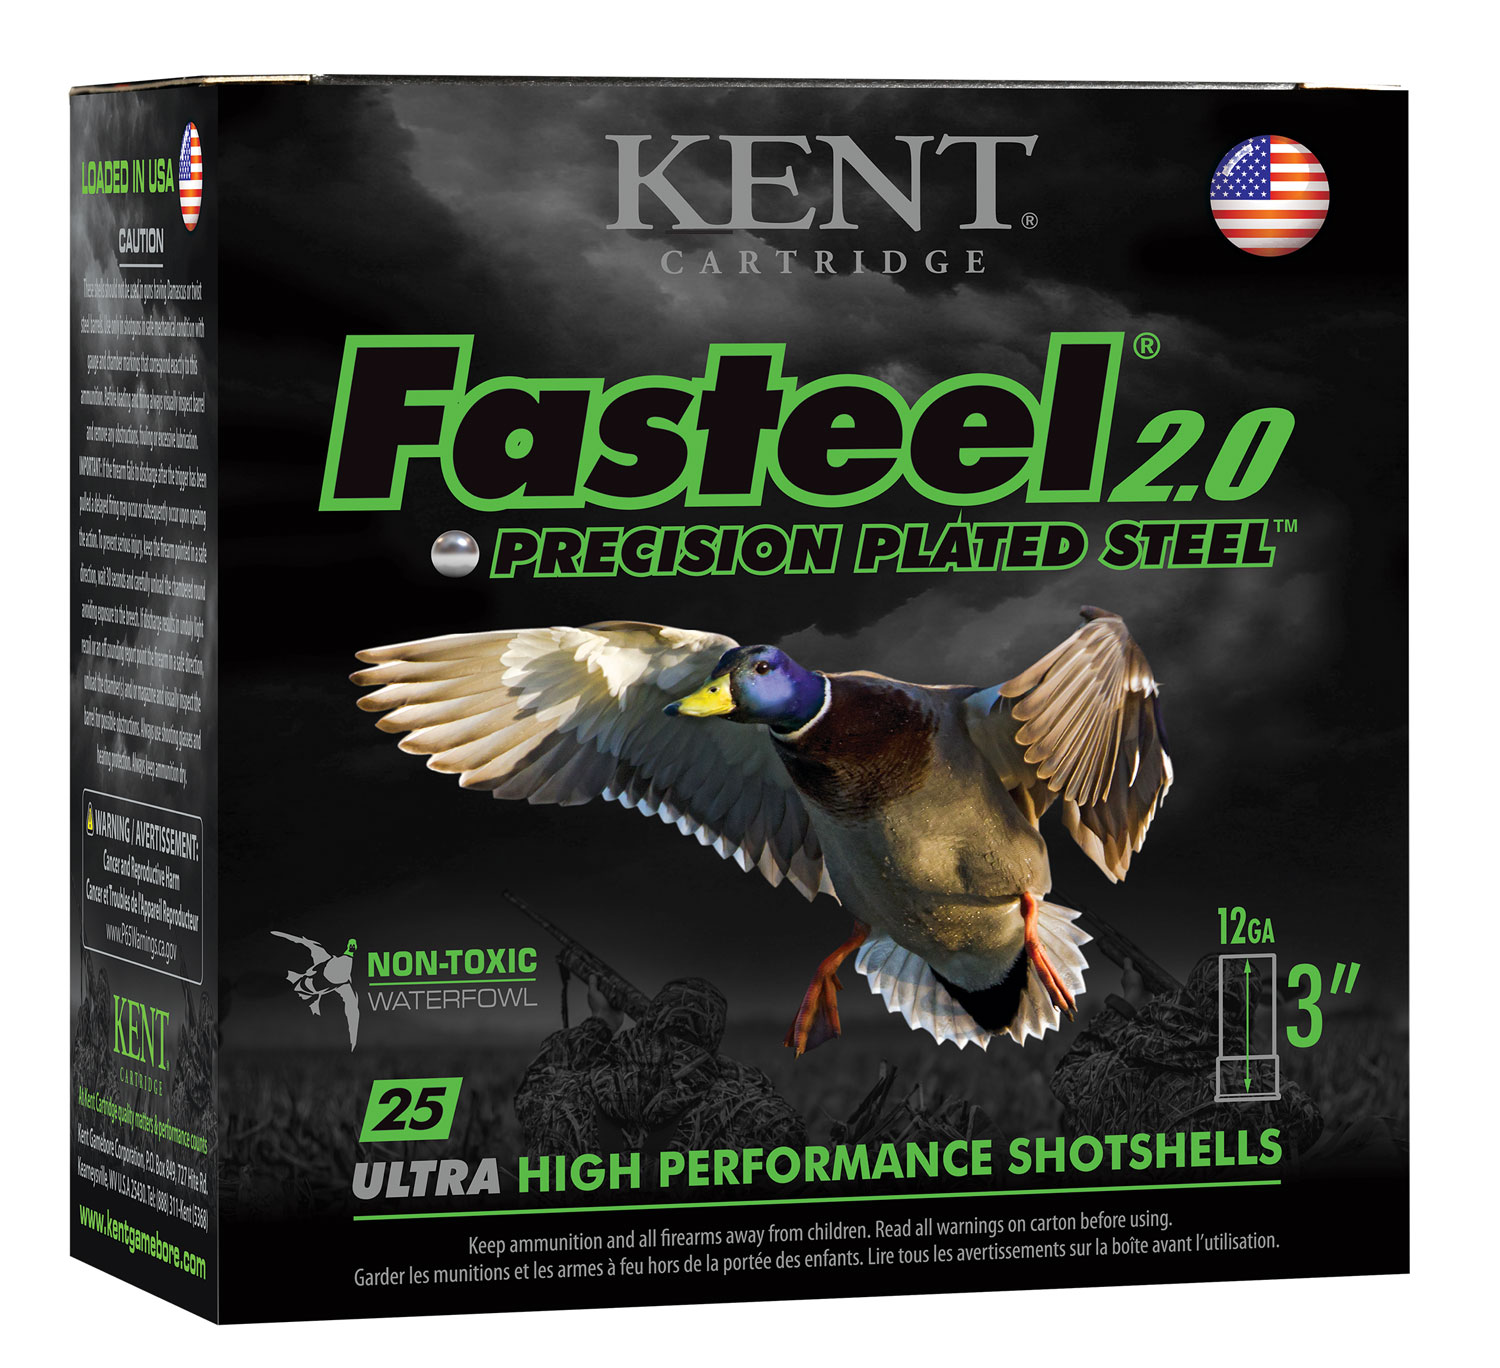 Kent Cartridge K123FS322 Fasteel 2.0  12 Gauge 3